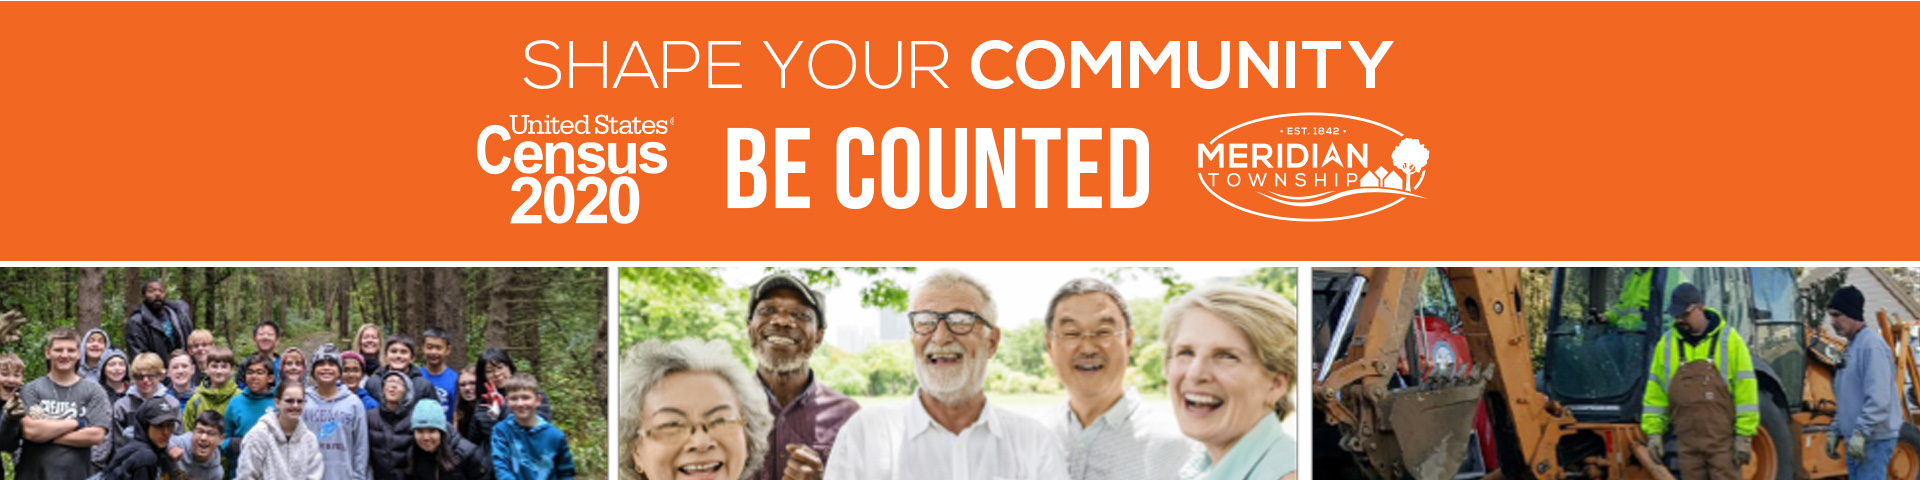 Census 2020 Shape Your Community homepage banner